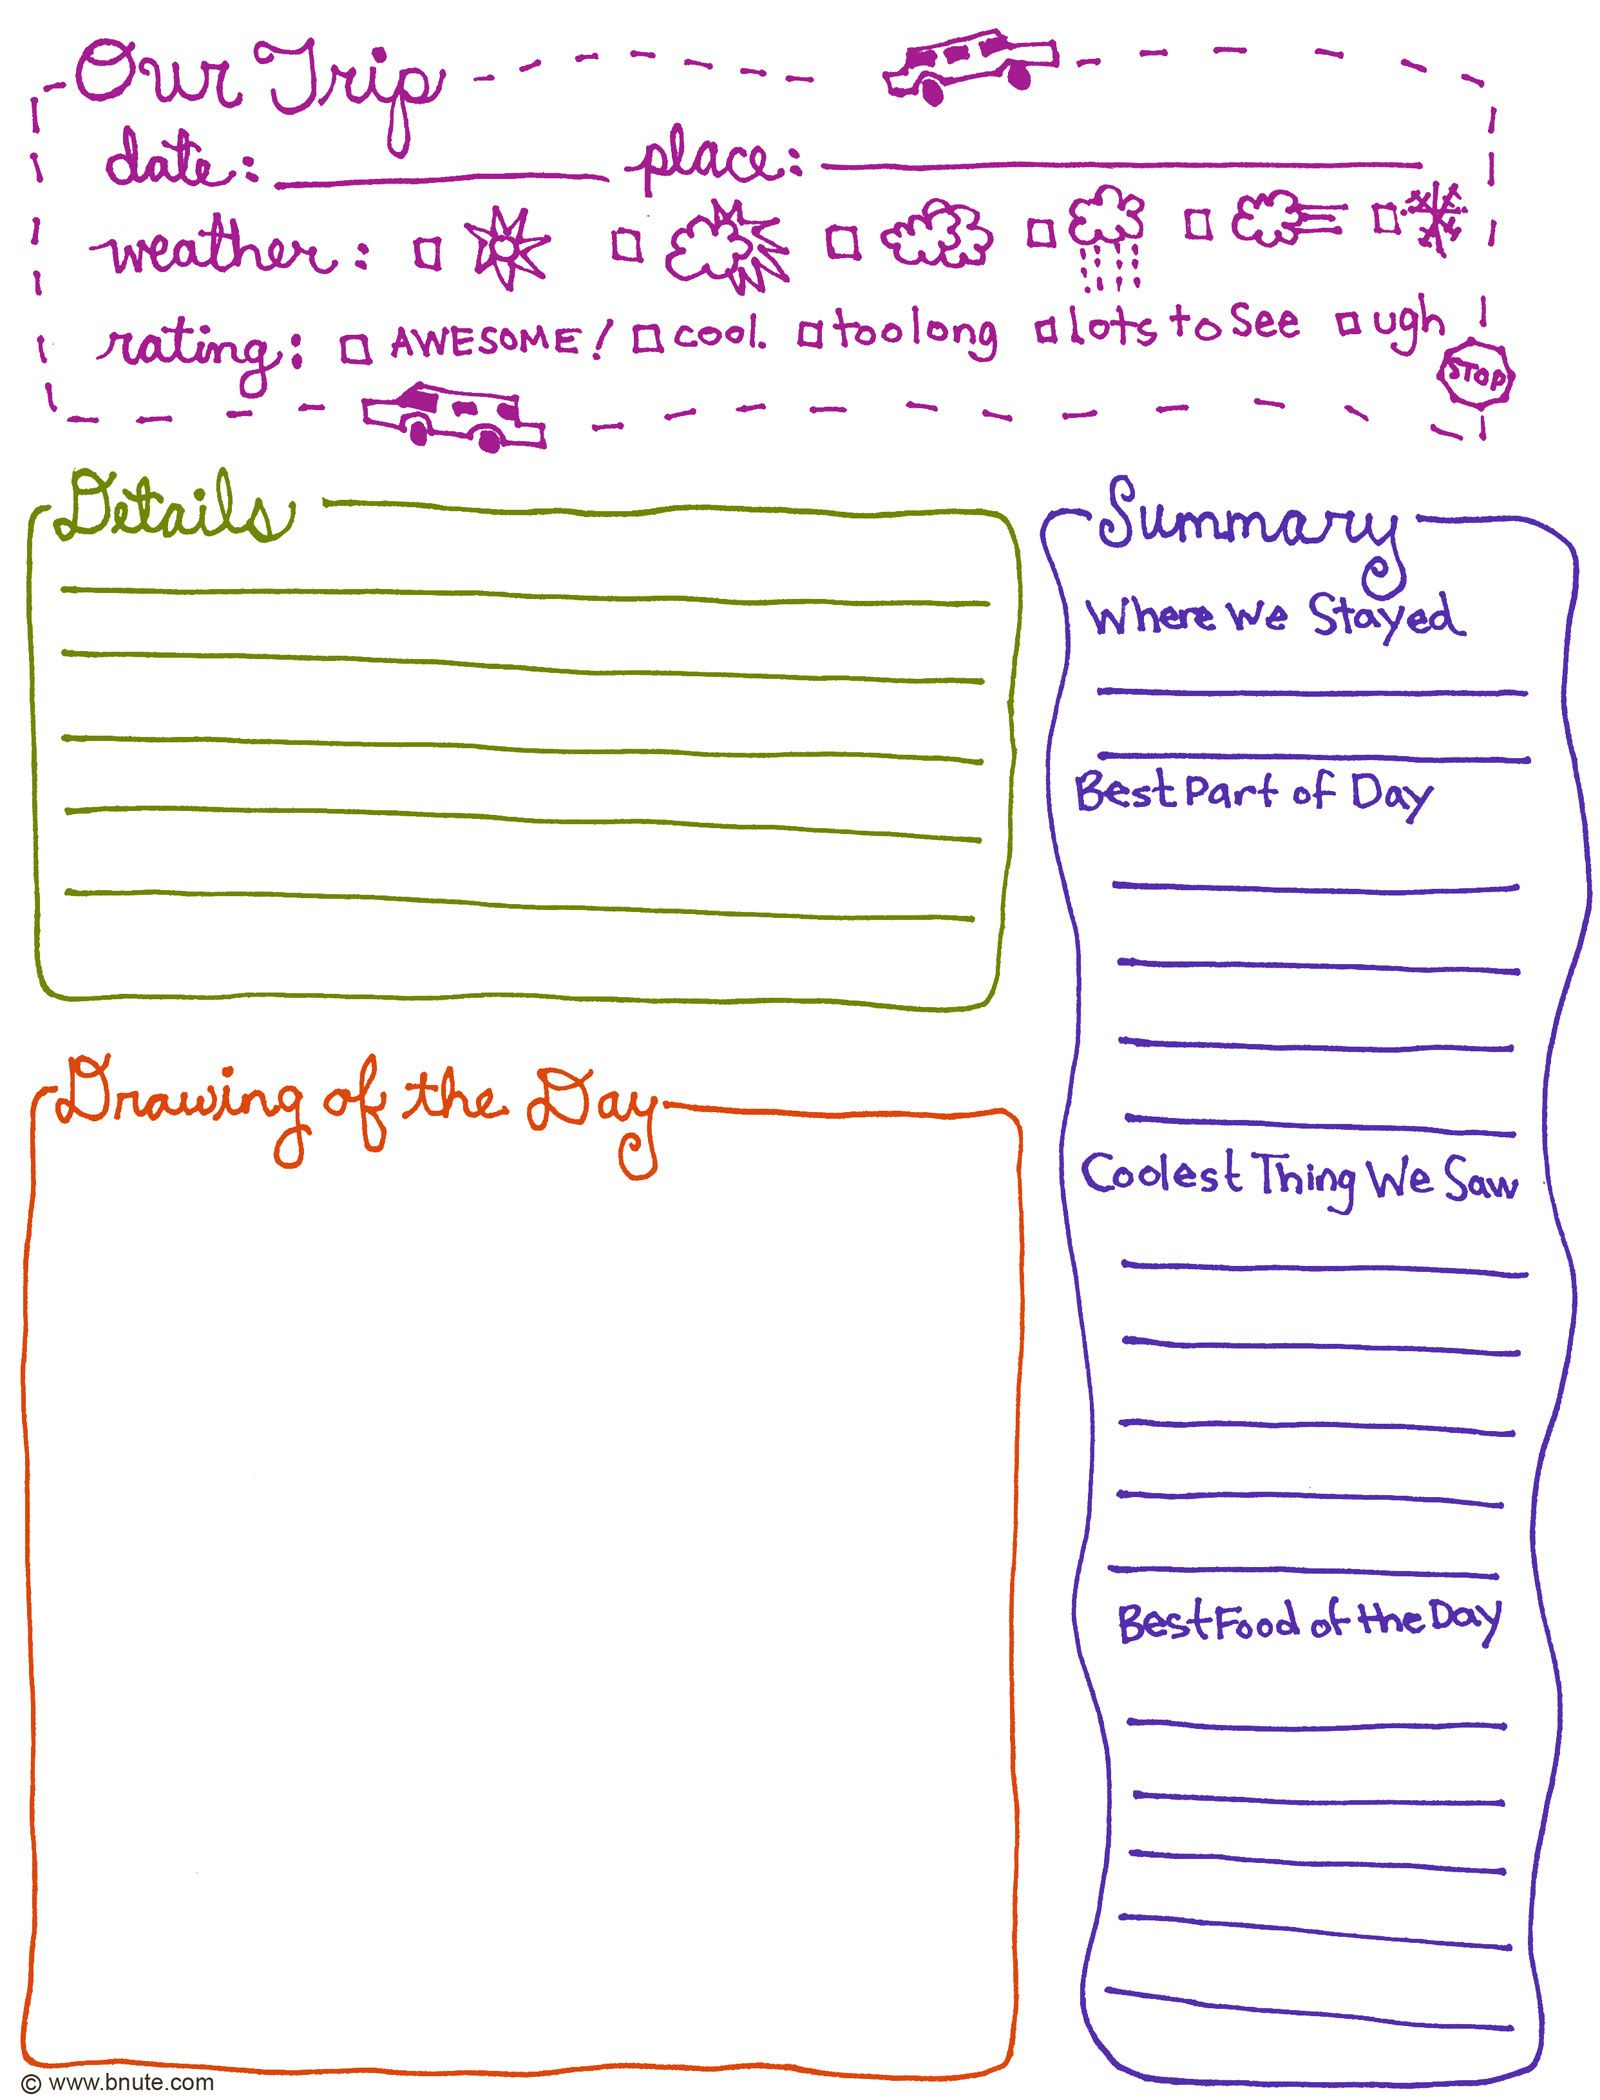 Daily Journal Sheets Printable,Journal.Printable Coloring Pages ...